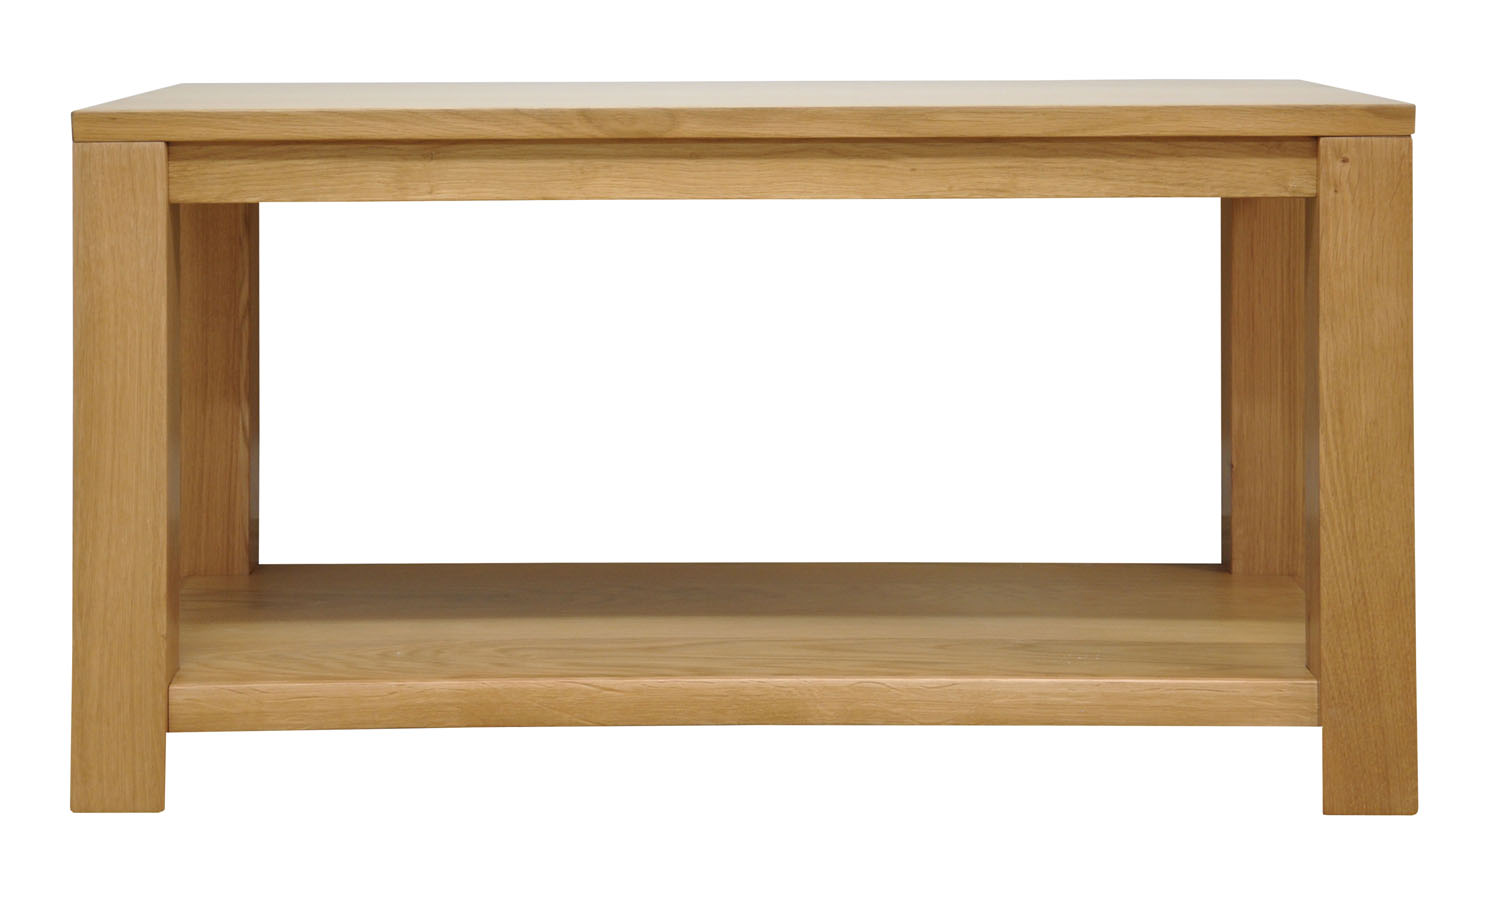 Small Oak Coffee Table With Shelf Wooden Tv Stand Lounge Storage Ebay